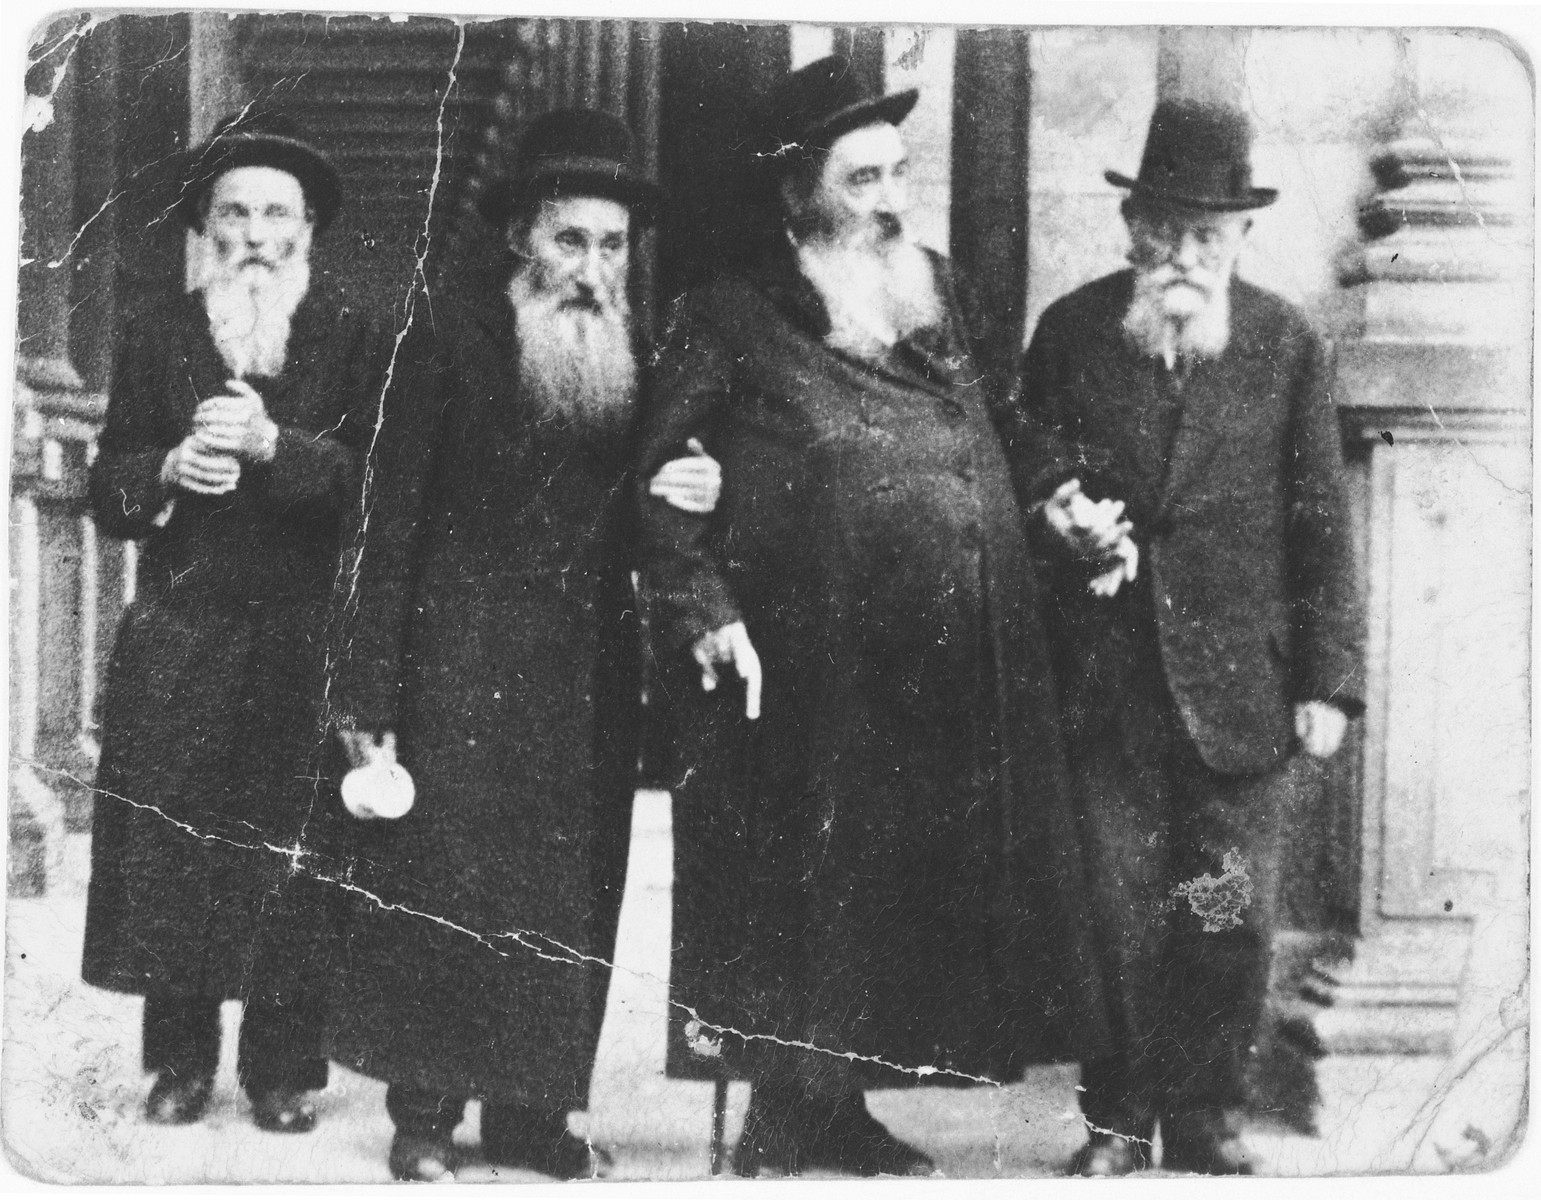 The Vizhnitser Rebbe, Rabbi Israel Hager, poses with three of his followers.